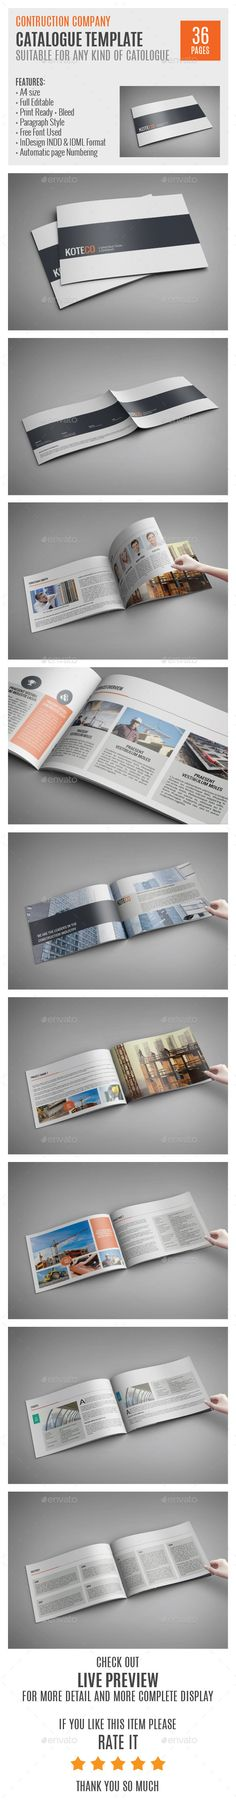 Construction Company A4 Profile Template 0006 — InDesign INDD #branding #stationary • Available here → https://graphicriver.net/item/construction-company-a4-profile-template-0006/9124688?ref=pxcr